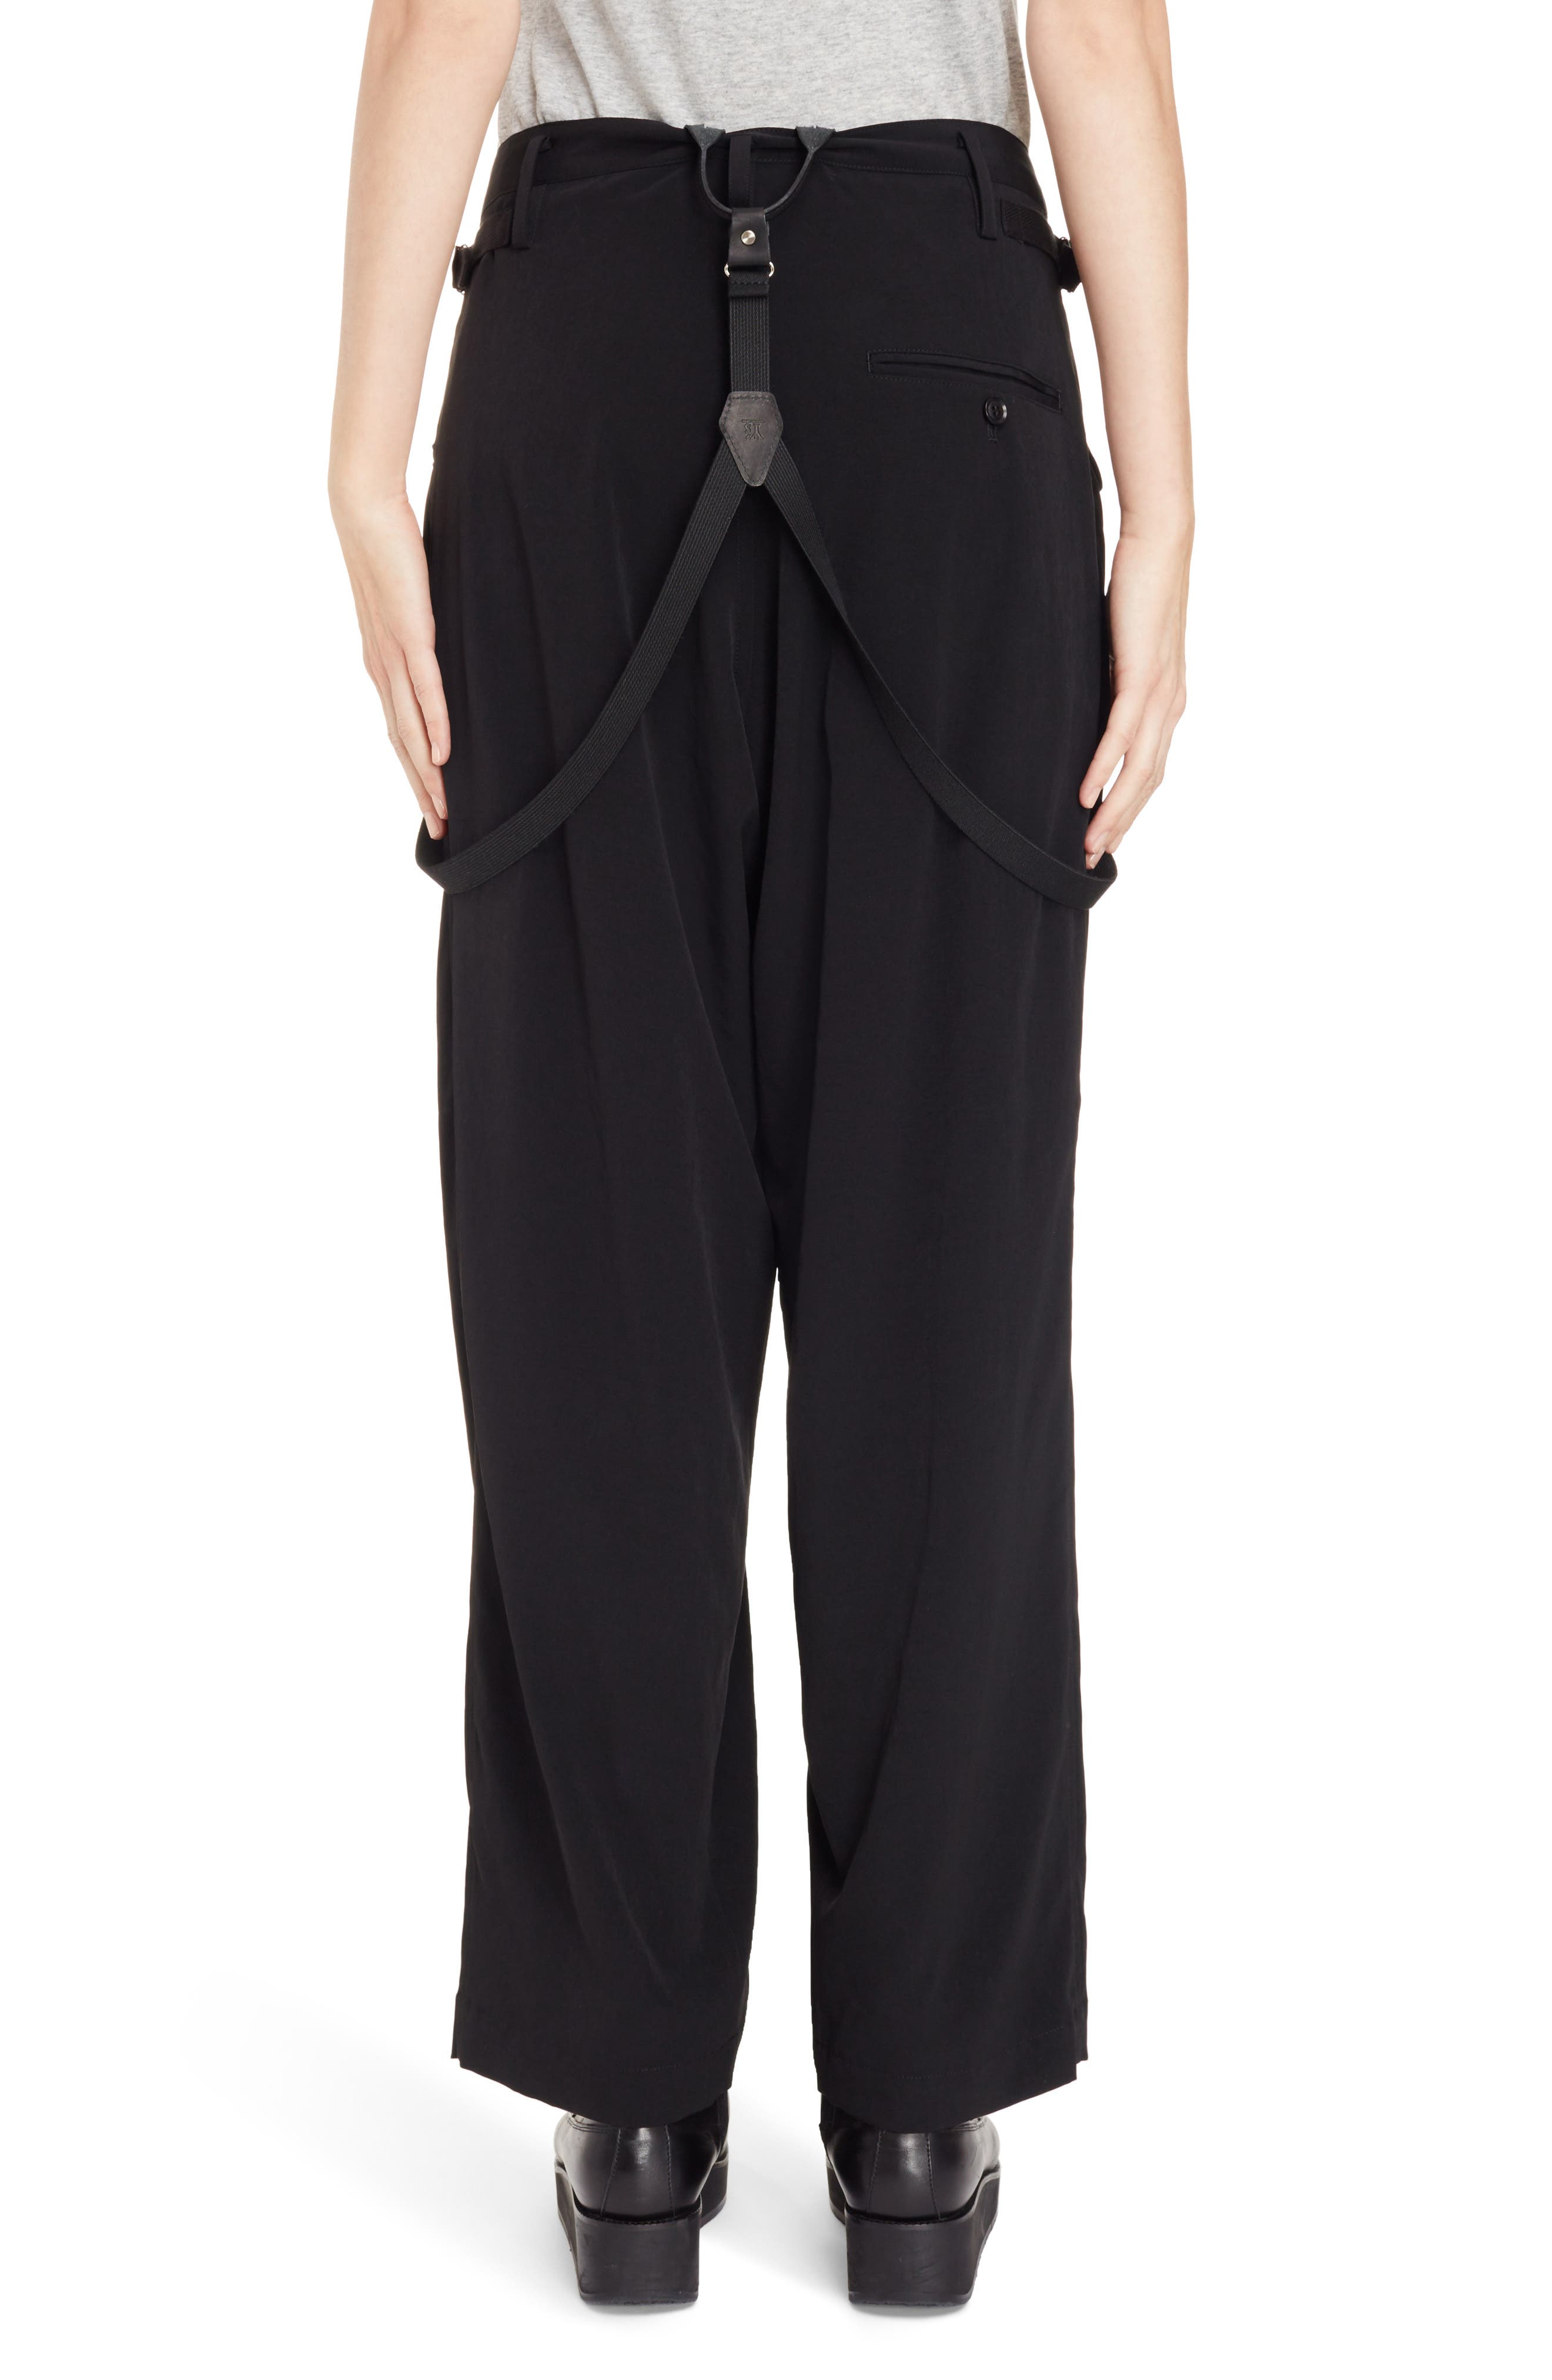 Alternate Image 3  - Y's by Yohji Yamamoto Pants with Suspenders